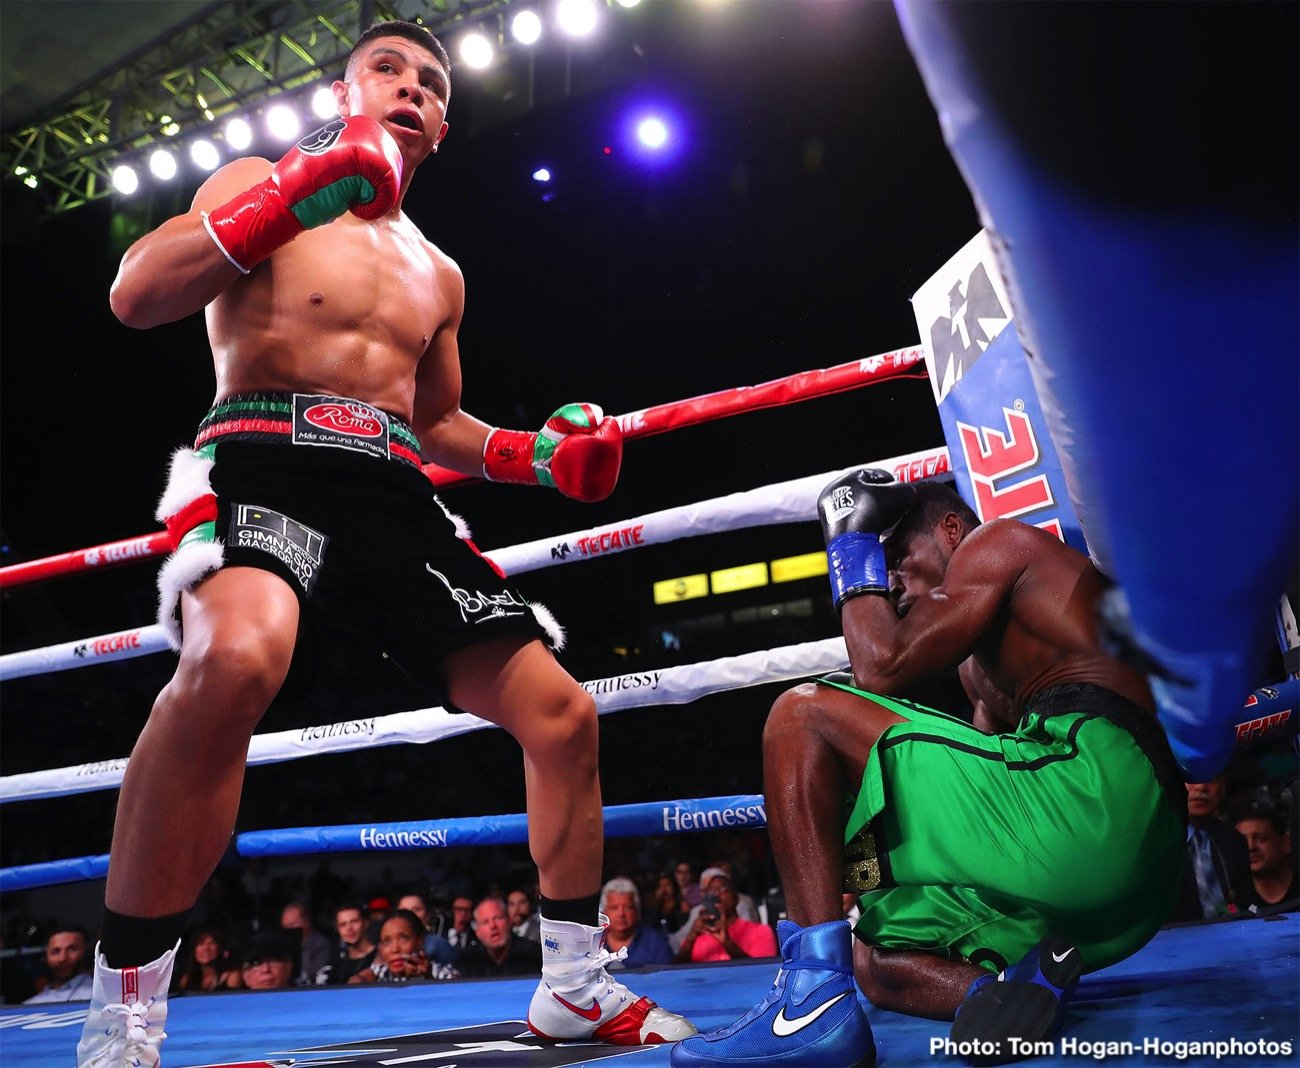 WBO junior middleweight champion Jaime Munguia (34-0, 27 KOs) stayed unbeaten with a 4th round knockout win over challenger Patrick Allotey (40-4, 30 KOs) last Saturday night on DAZN at the Dignity Health Sports Park in Carson, California. Munguia dropped Allotey three times in the fight before the match was stopped in round 4.